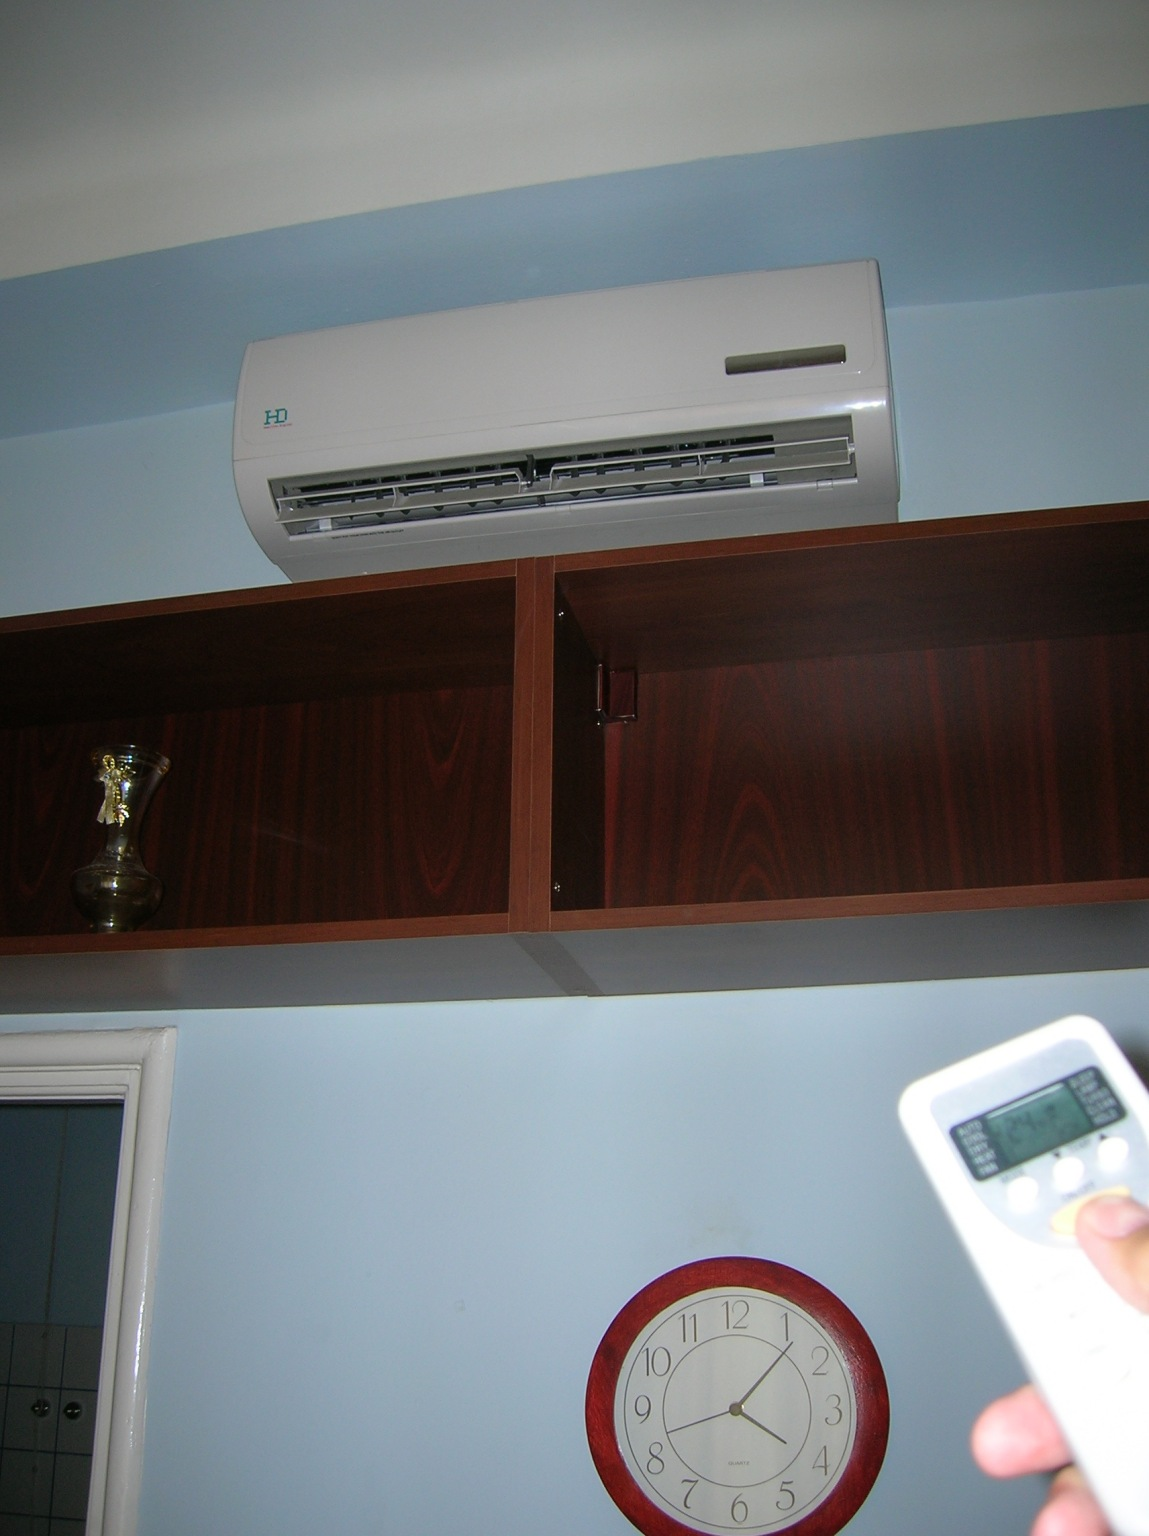 the brand-new air conditioner